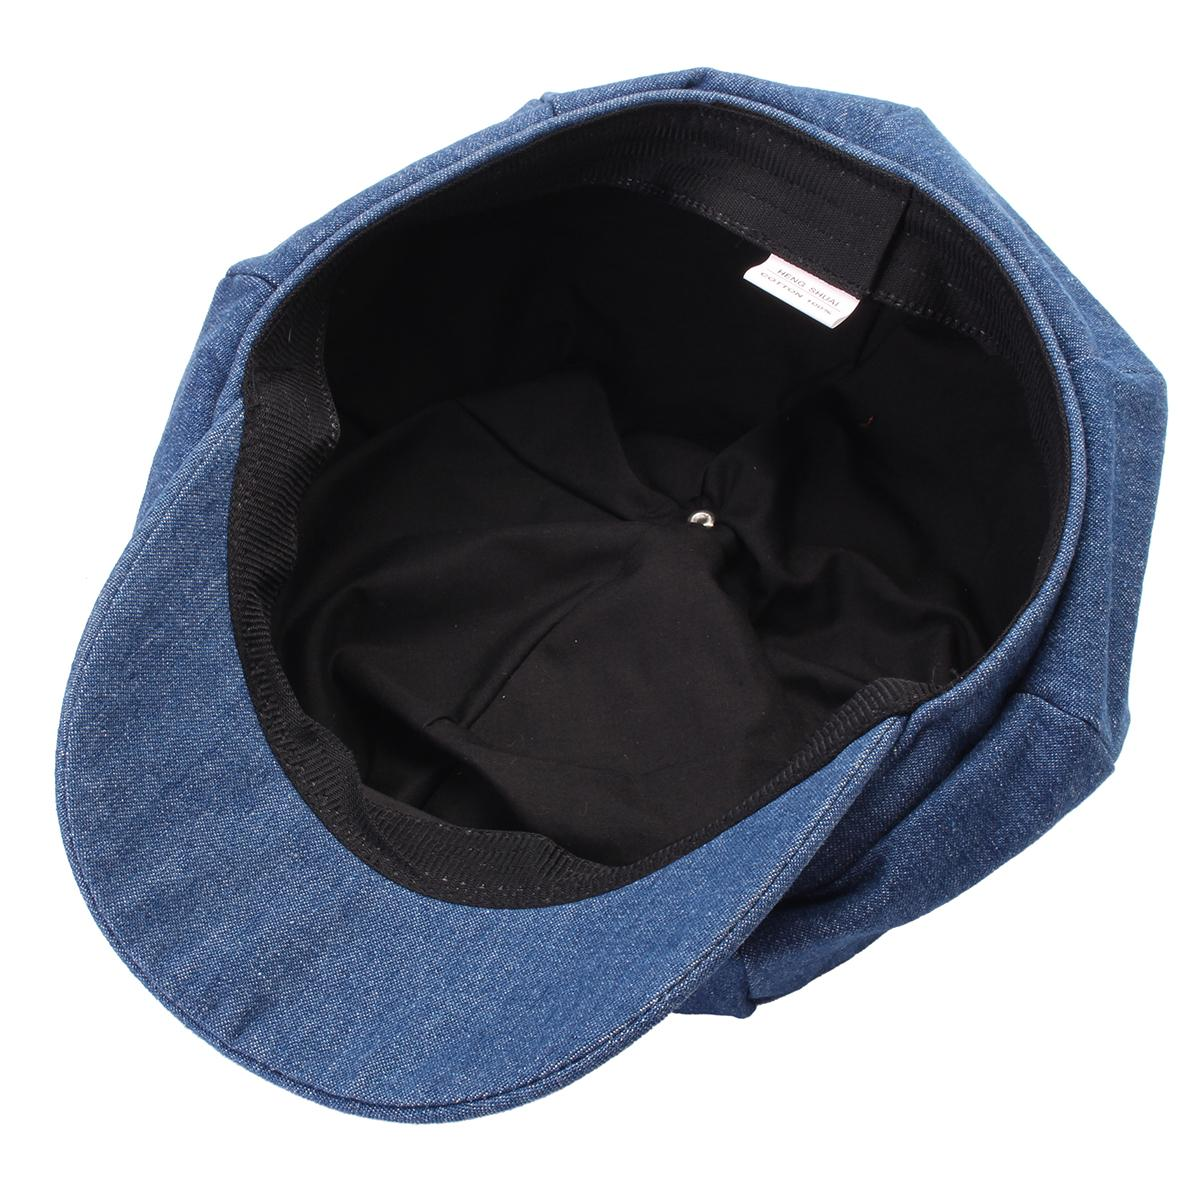 55bf00d3 Denim Newsboy Hats Washed Octagonal Cap Beret Hat For Women Sun Hat Ladies  Summer Spring Retro Flat Caps Driving Hats Berets-in Newsboy Caps from  Apparel ...